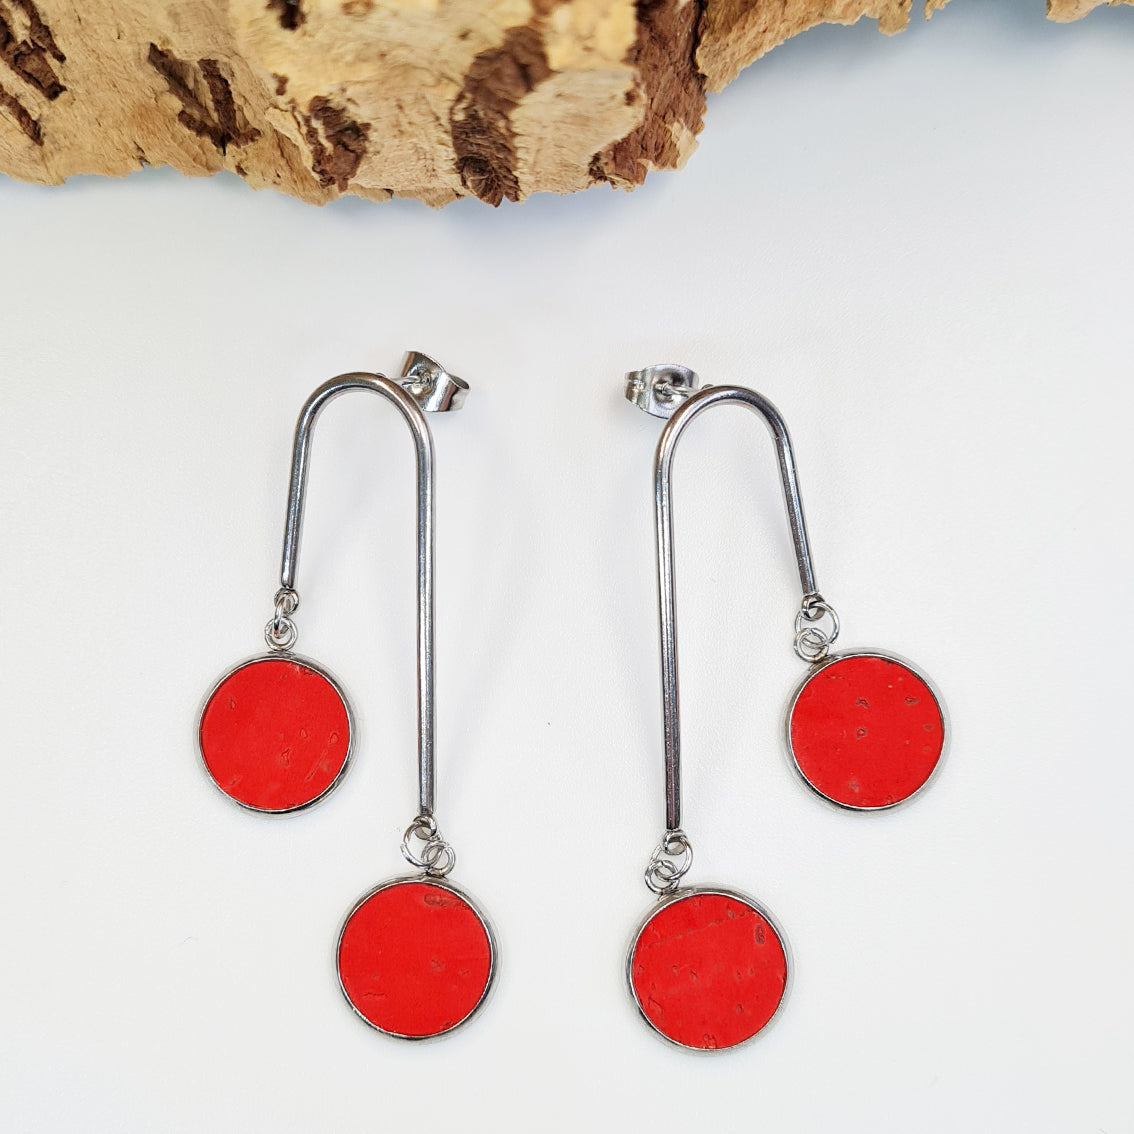 Fabrikk 2nd Planet Drop Earrings | Red | Eco Cork